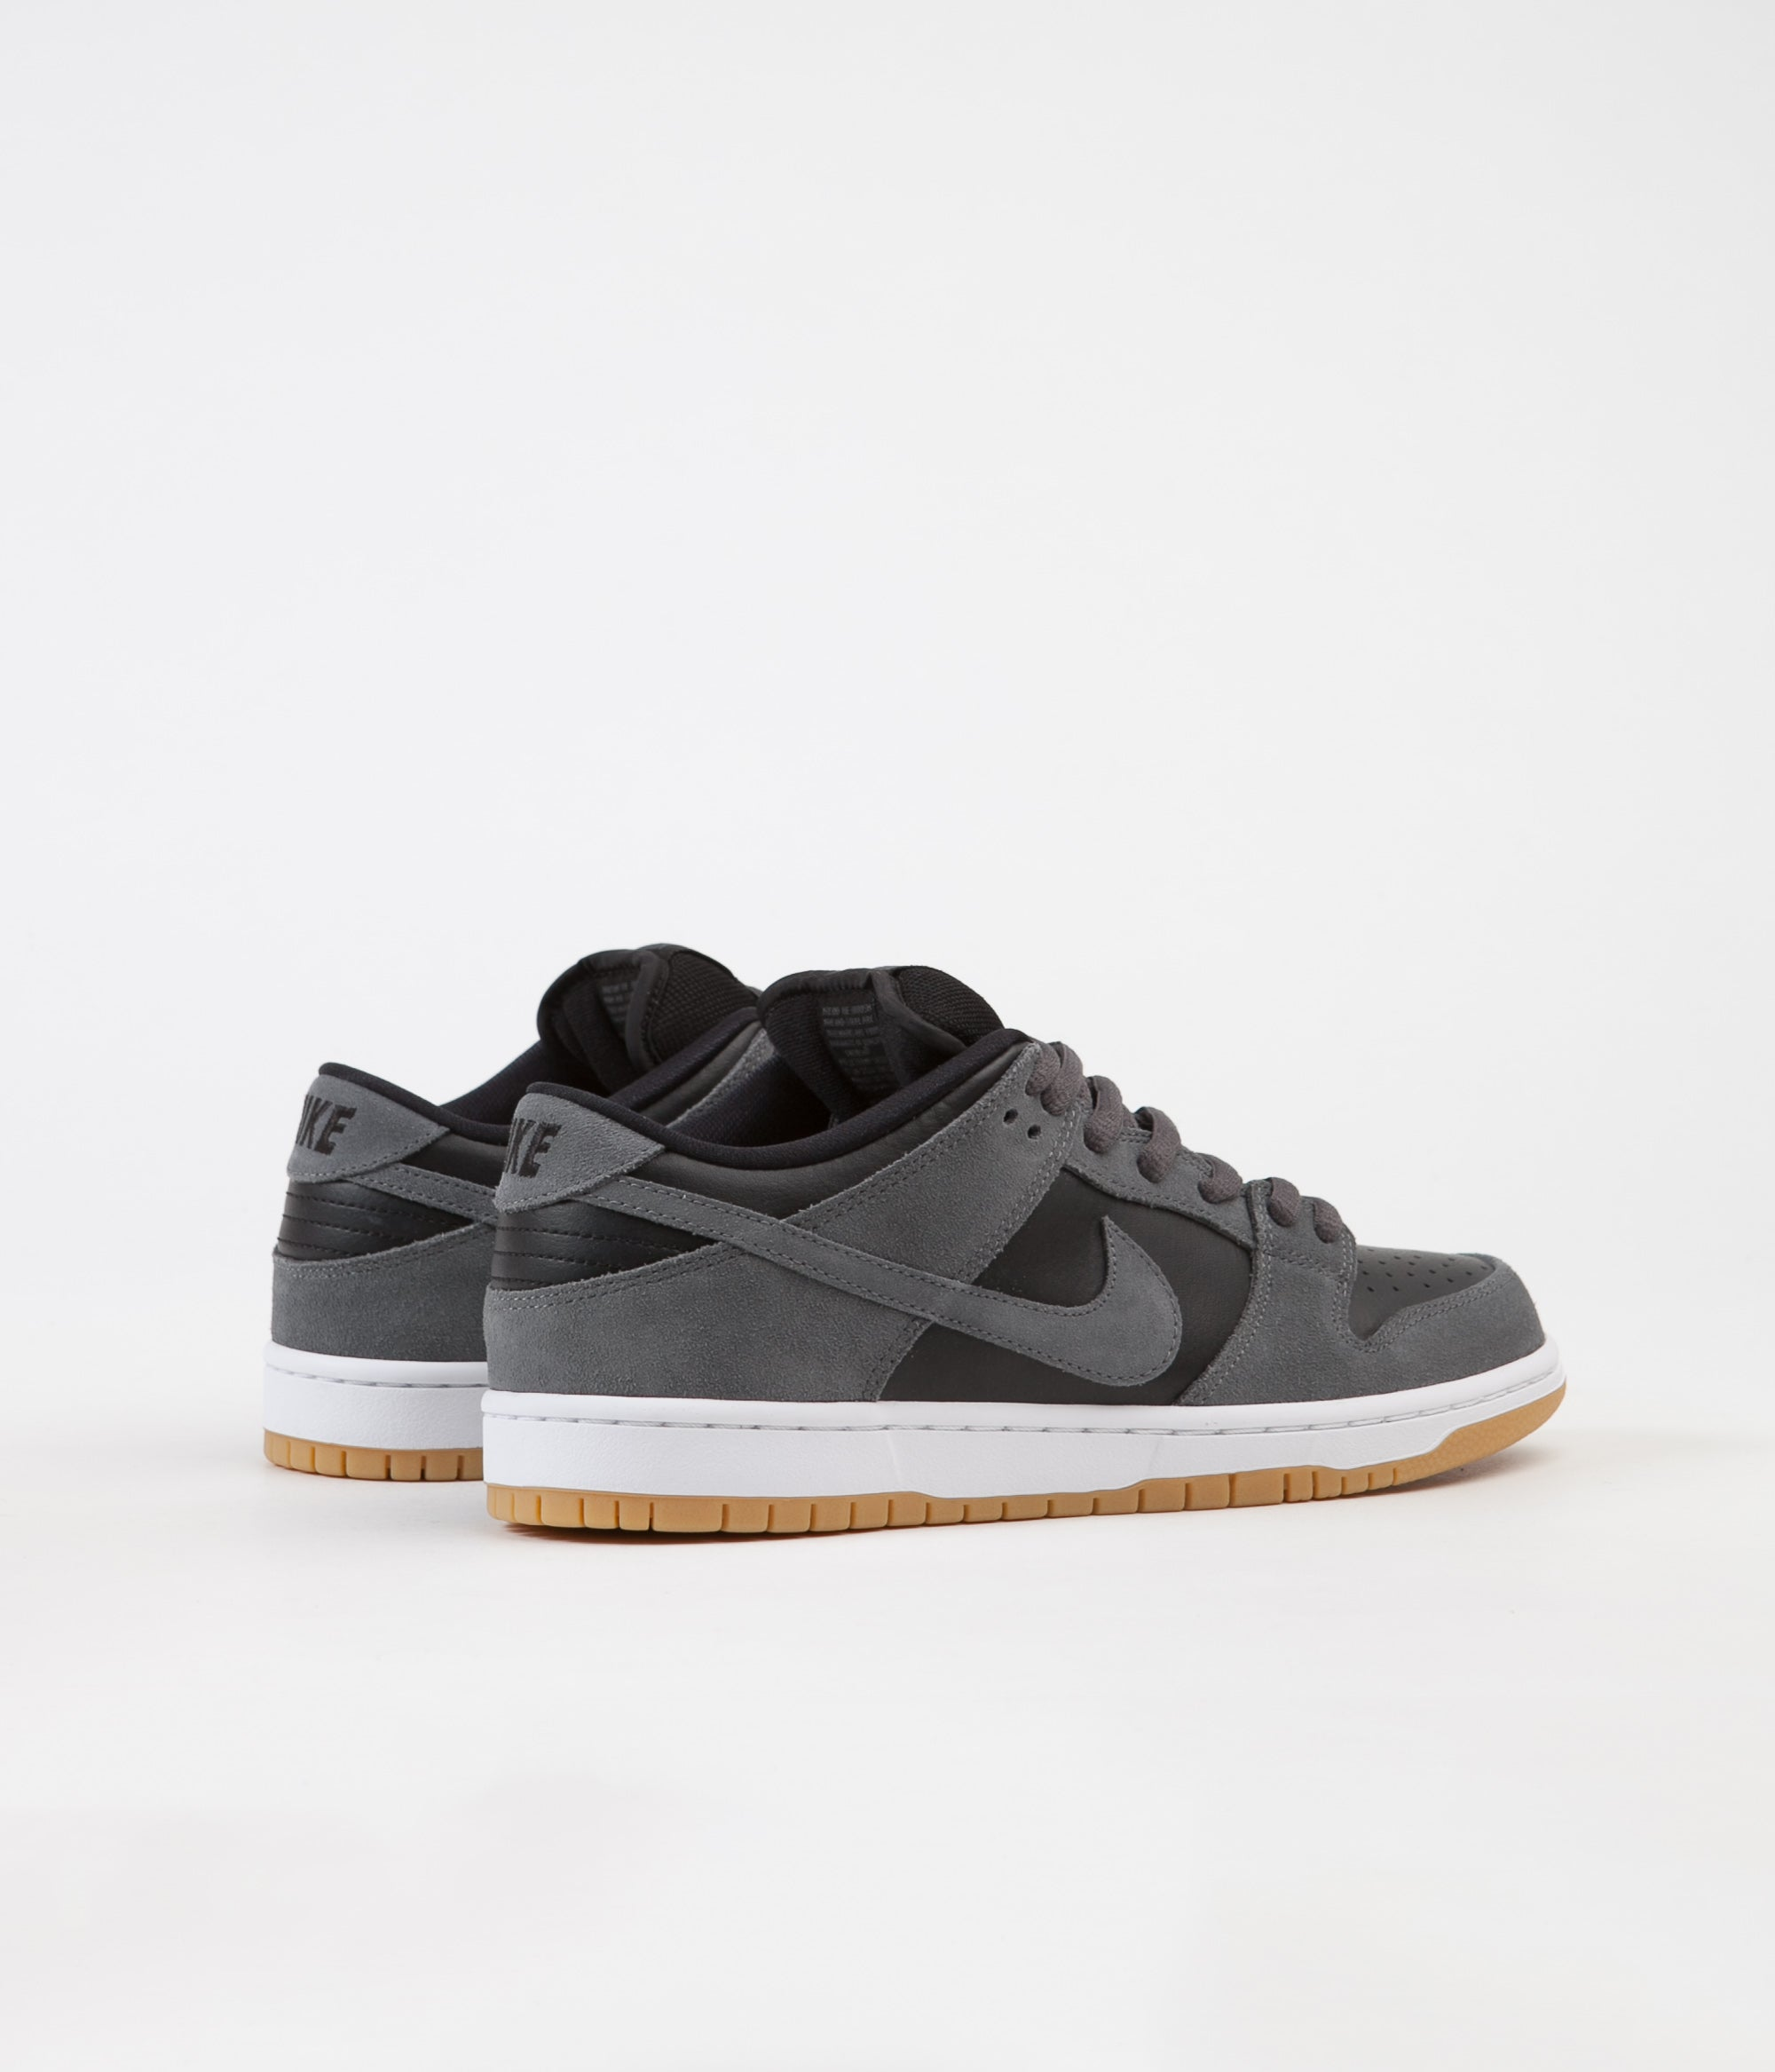 Dark Low Trd Sb White Grey Dunk Black Nike Shoes ZEAXq